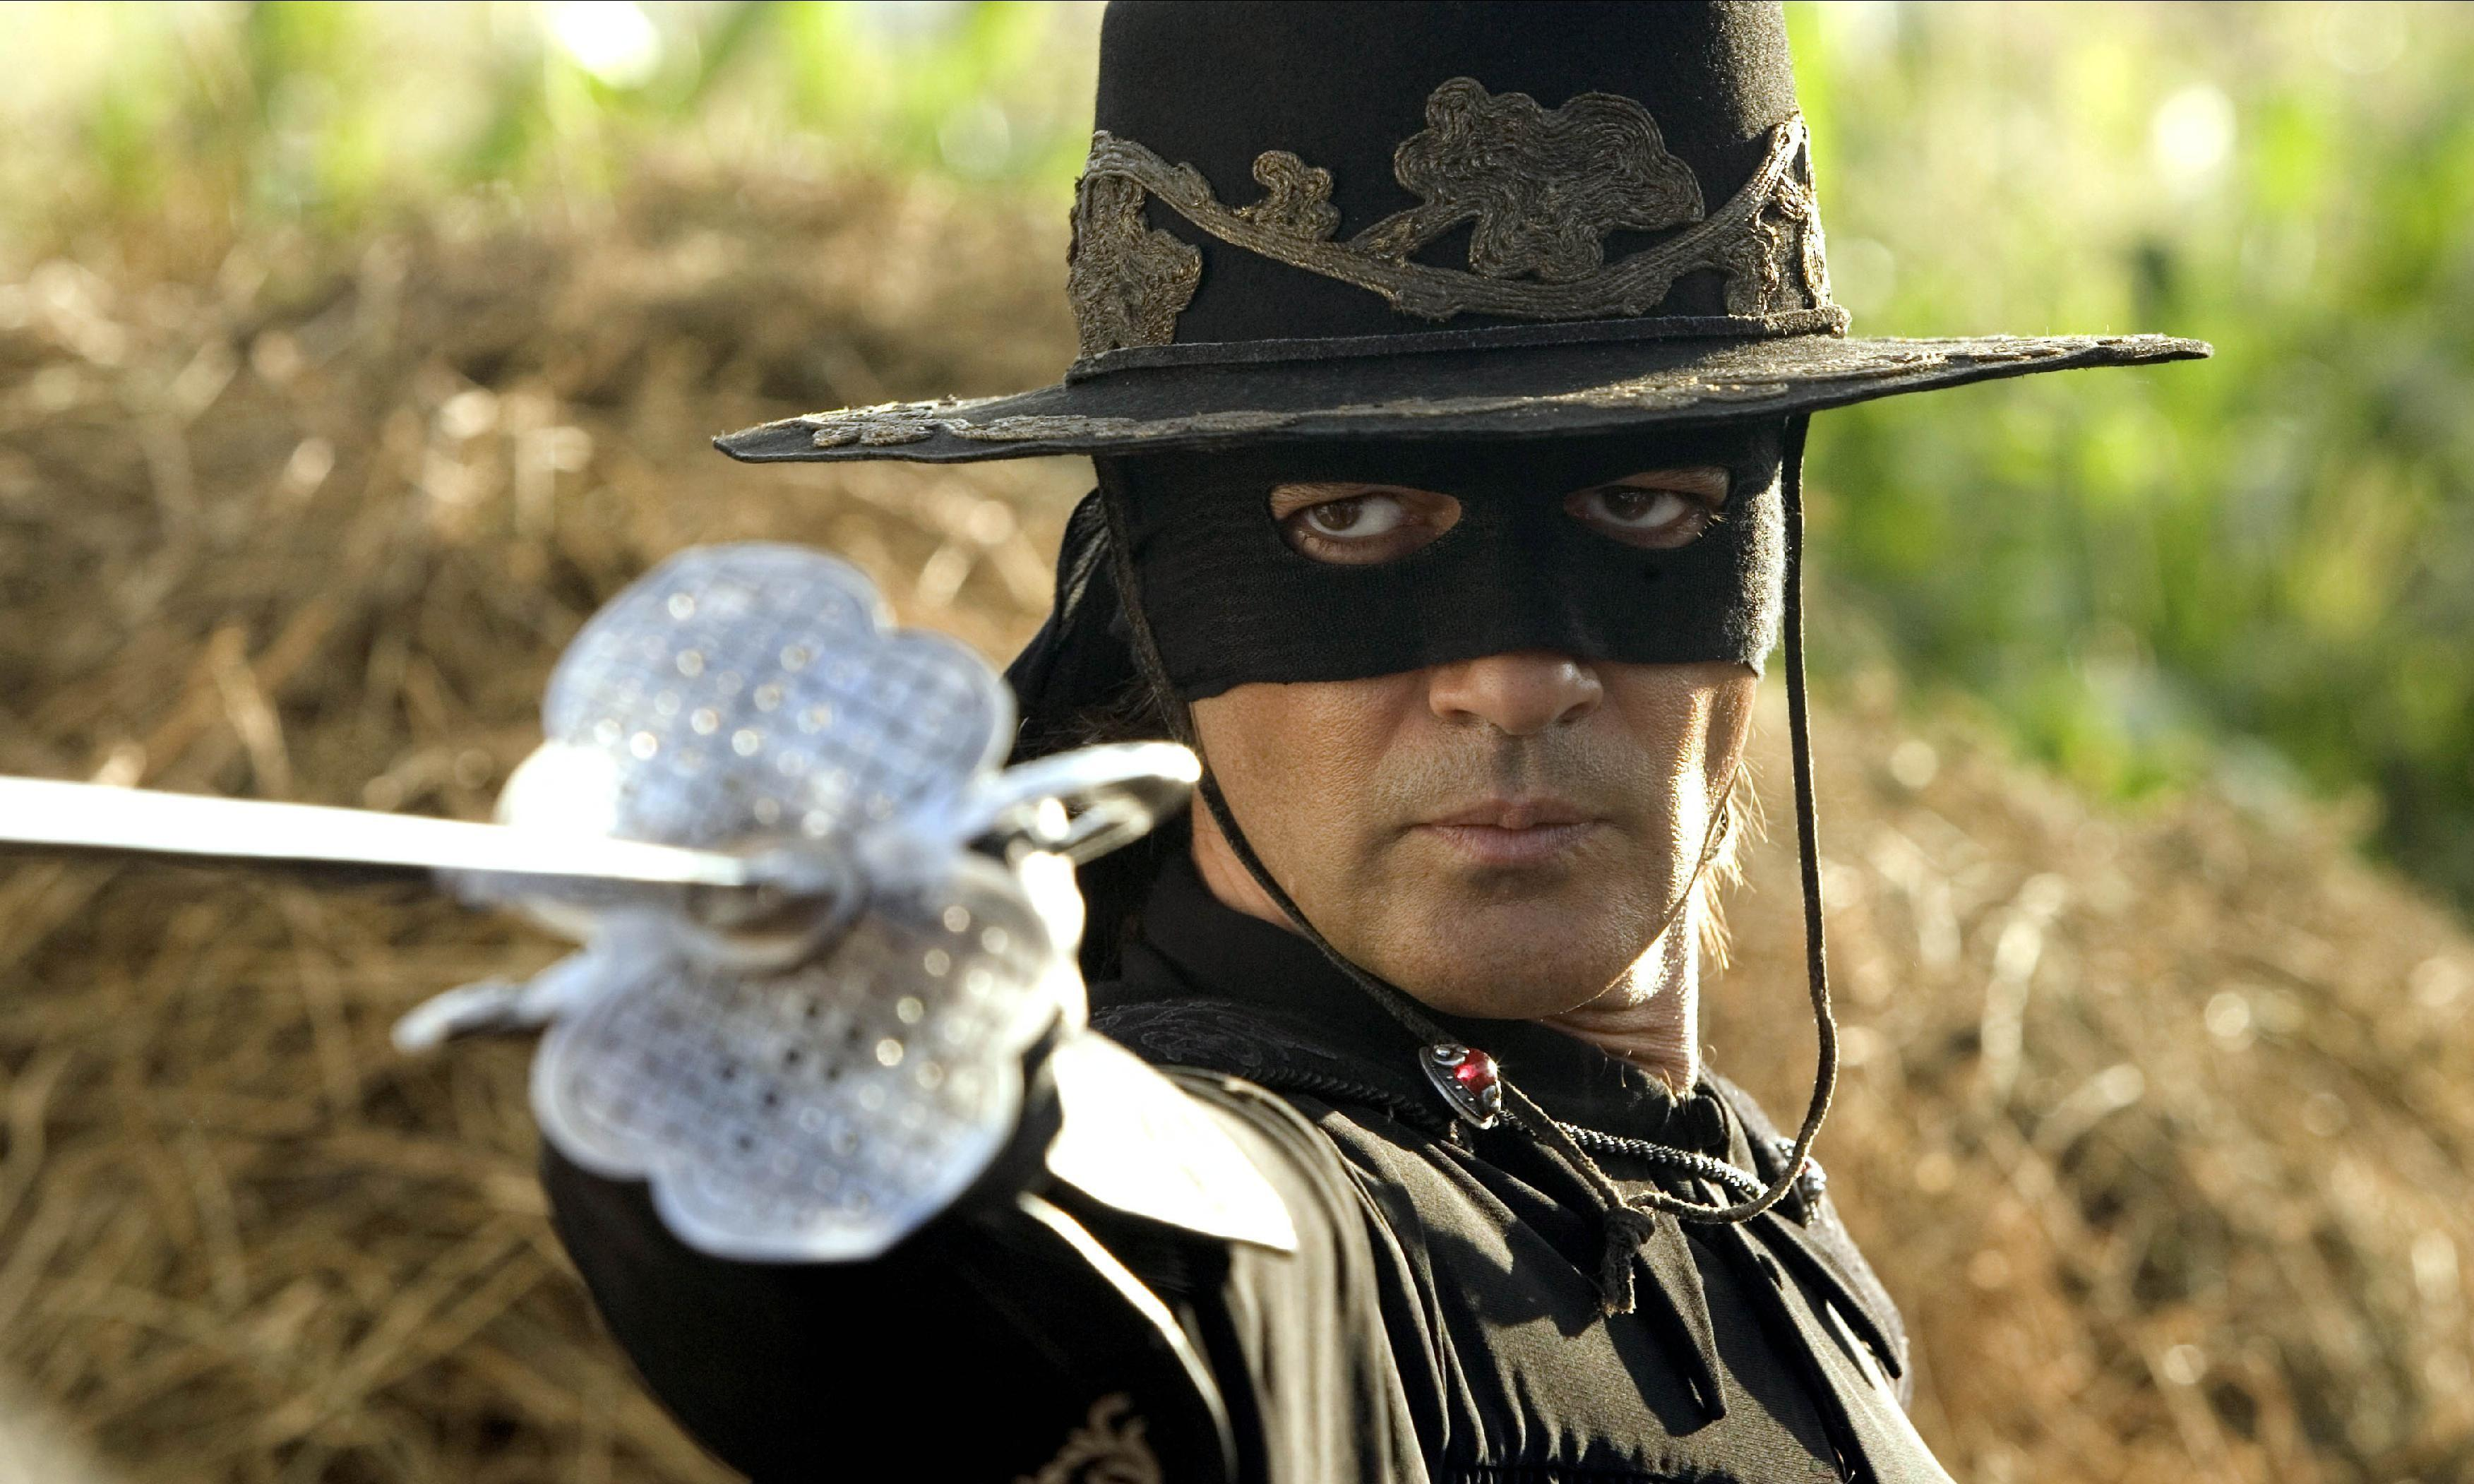 Did you solve it? The Zorro puzzle